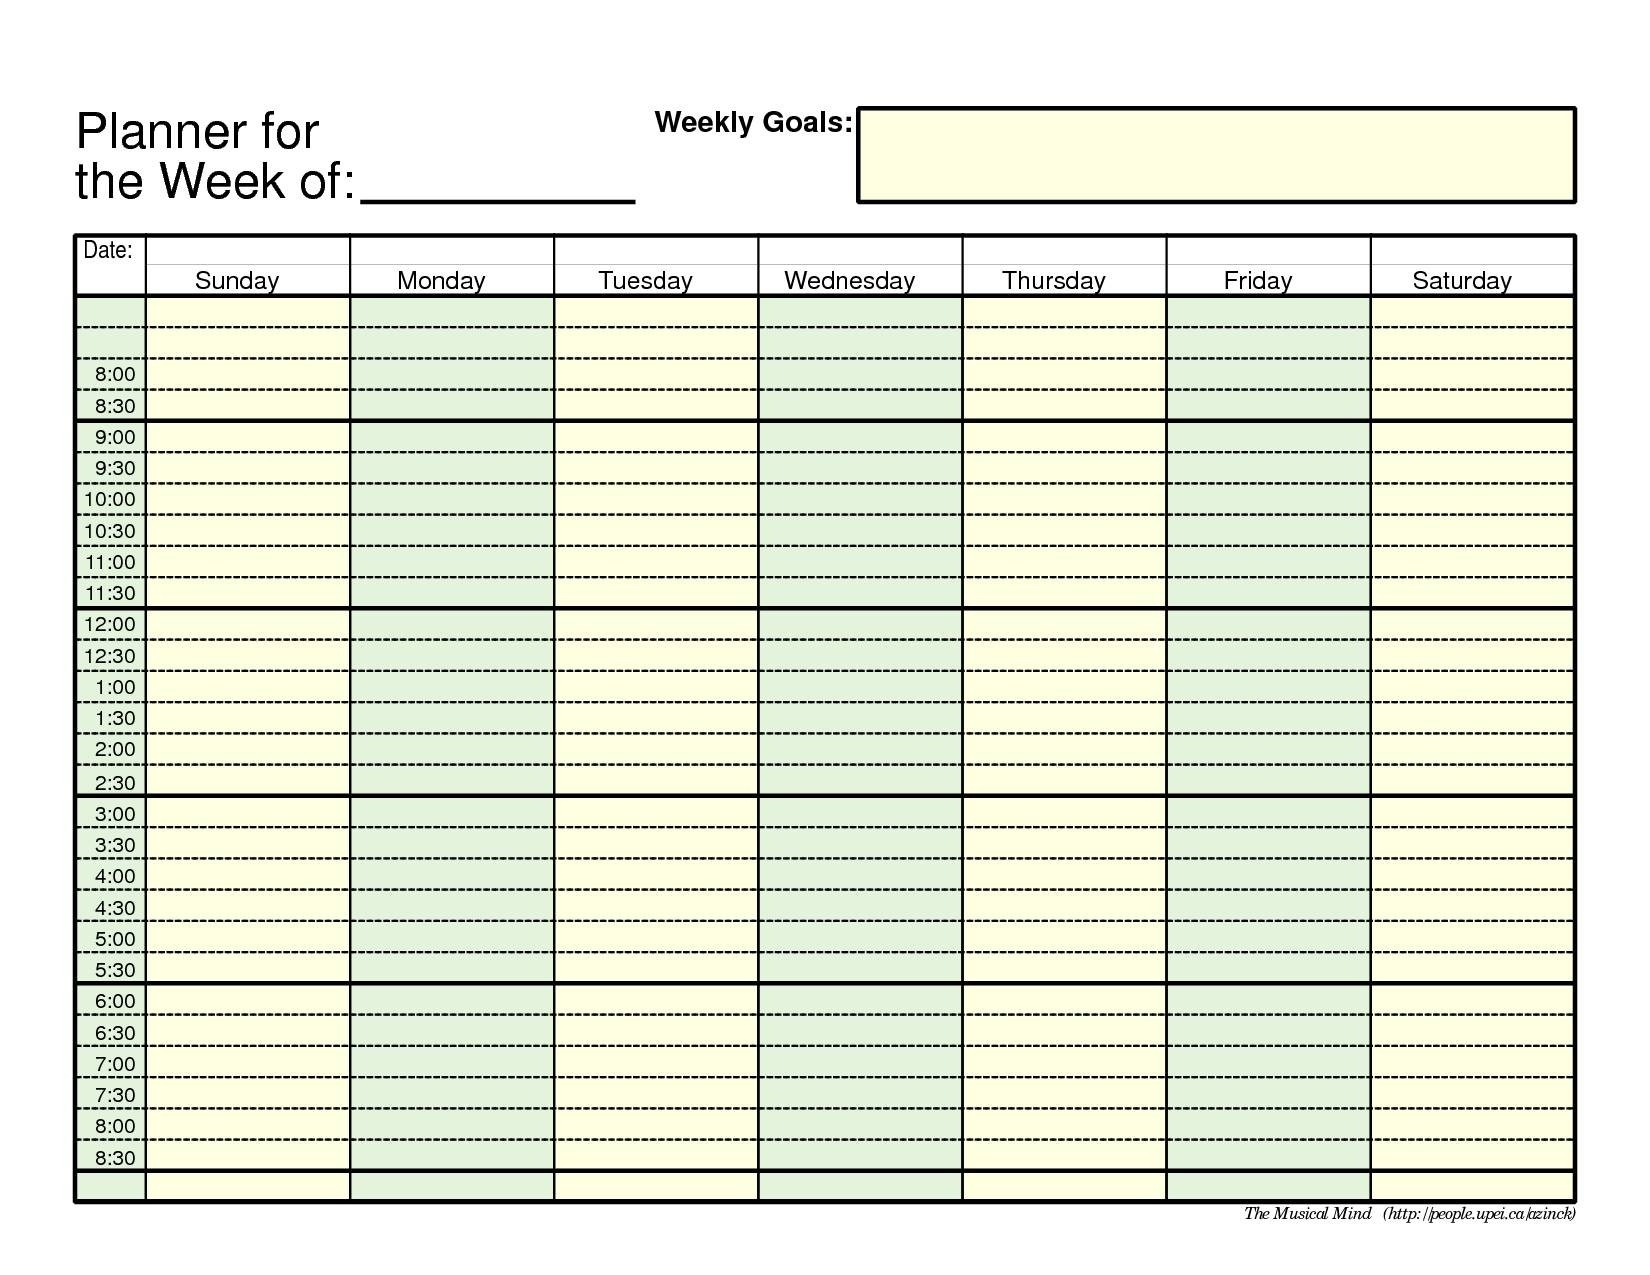 Print Blank Week Calendar Outlook Printable For Free Of Cost Weekly_Outlook Calendar Printing Blank